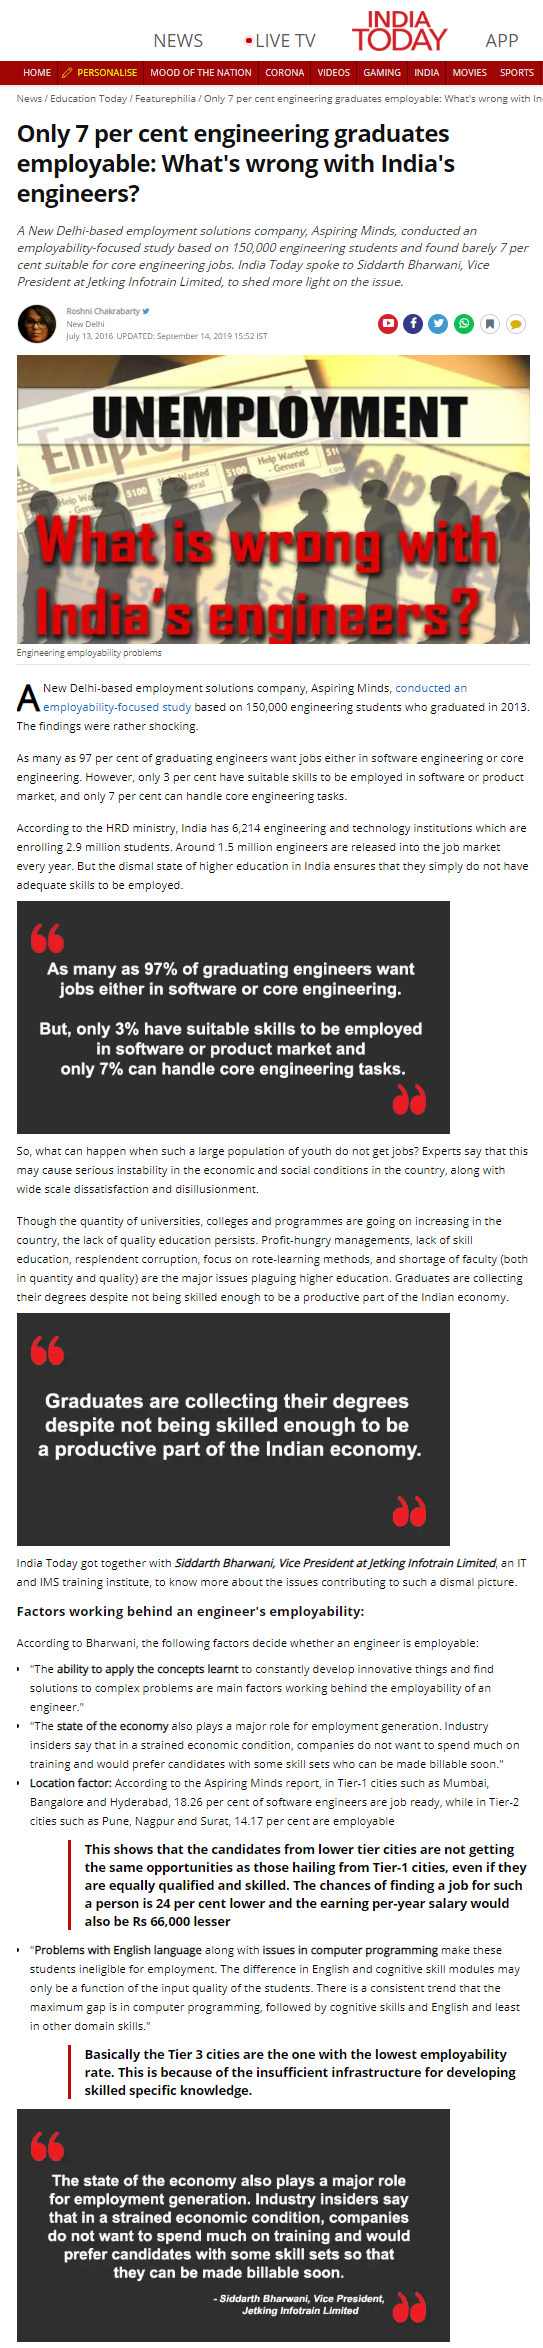 India-Today-News-Only-7-percent-engineering-graduates-employeable